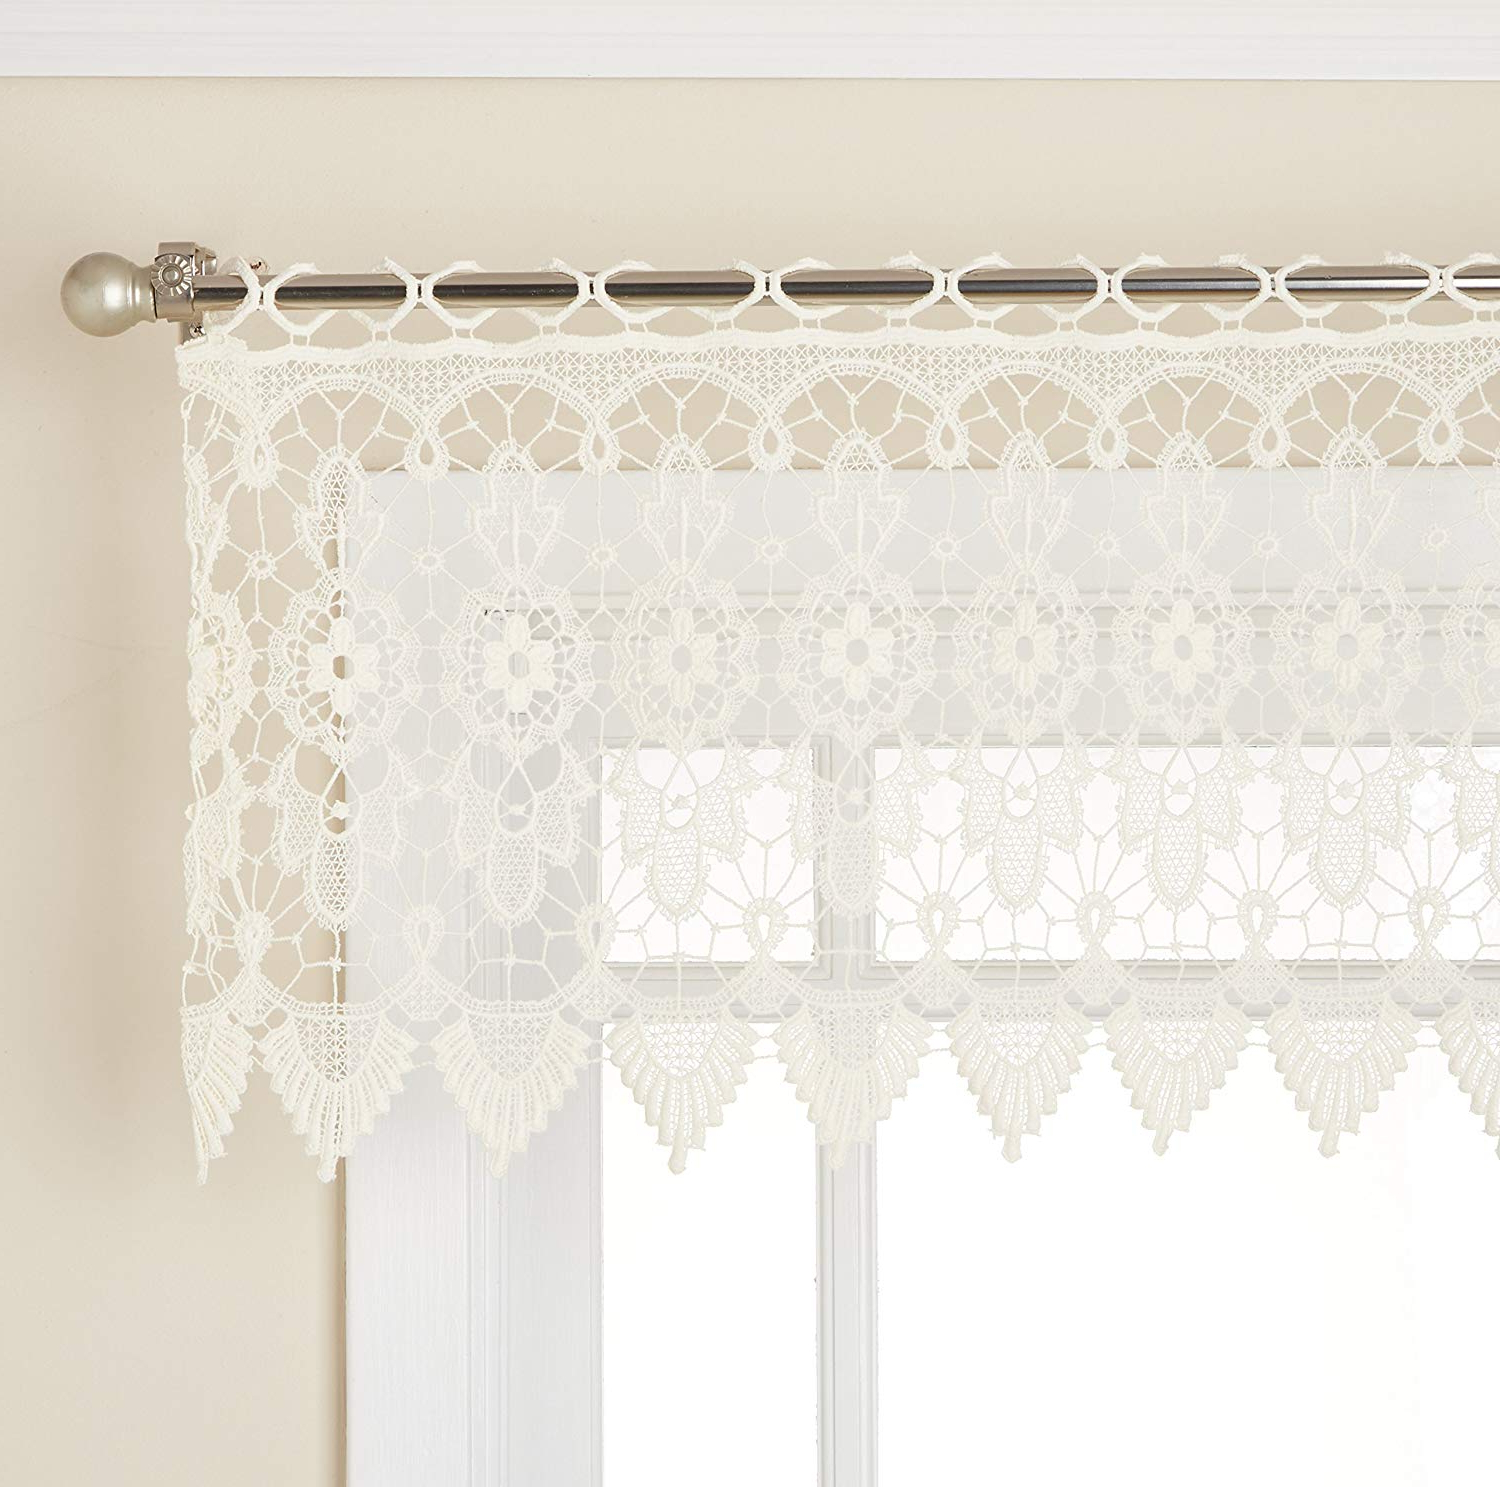 """Best And Newest Lorraine Home Fashions 01106 V 00010 Medallion Tailored Window Curtain Valance, 48"""" X 16"""", Ecru Regarding Medallion Window Curtain Valances (View 12 of 20)"""